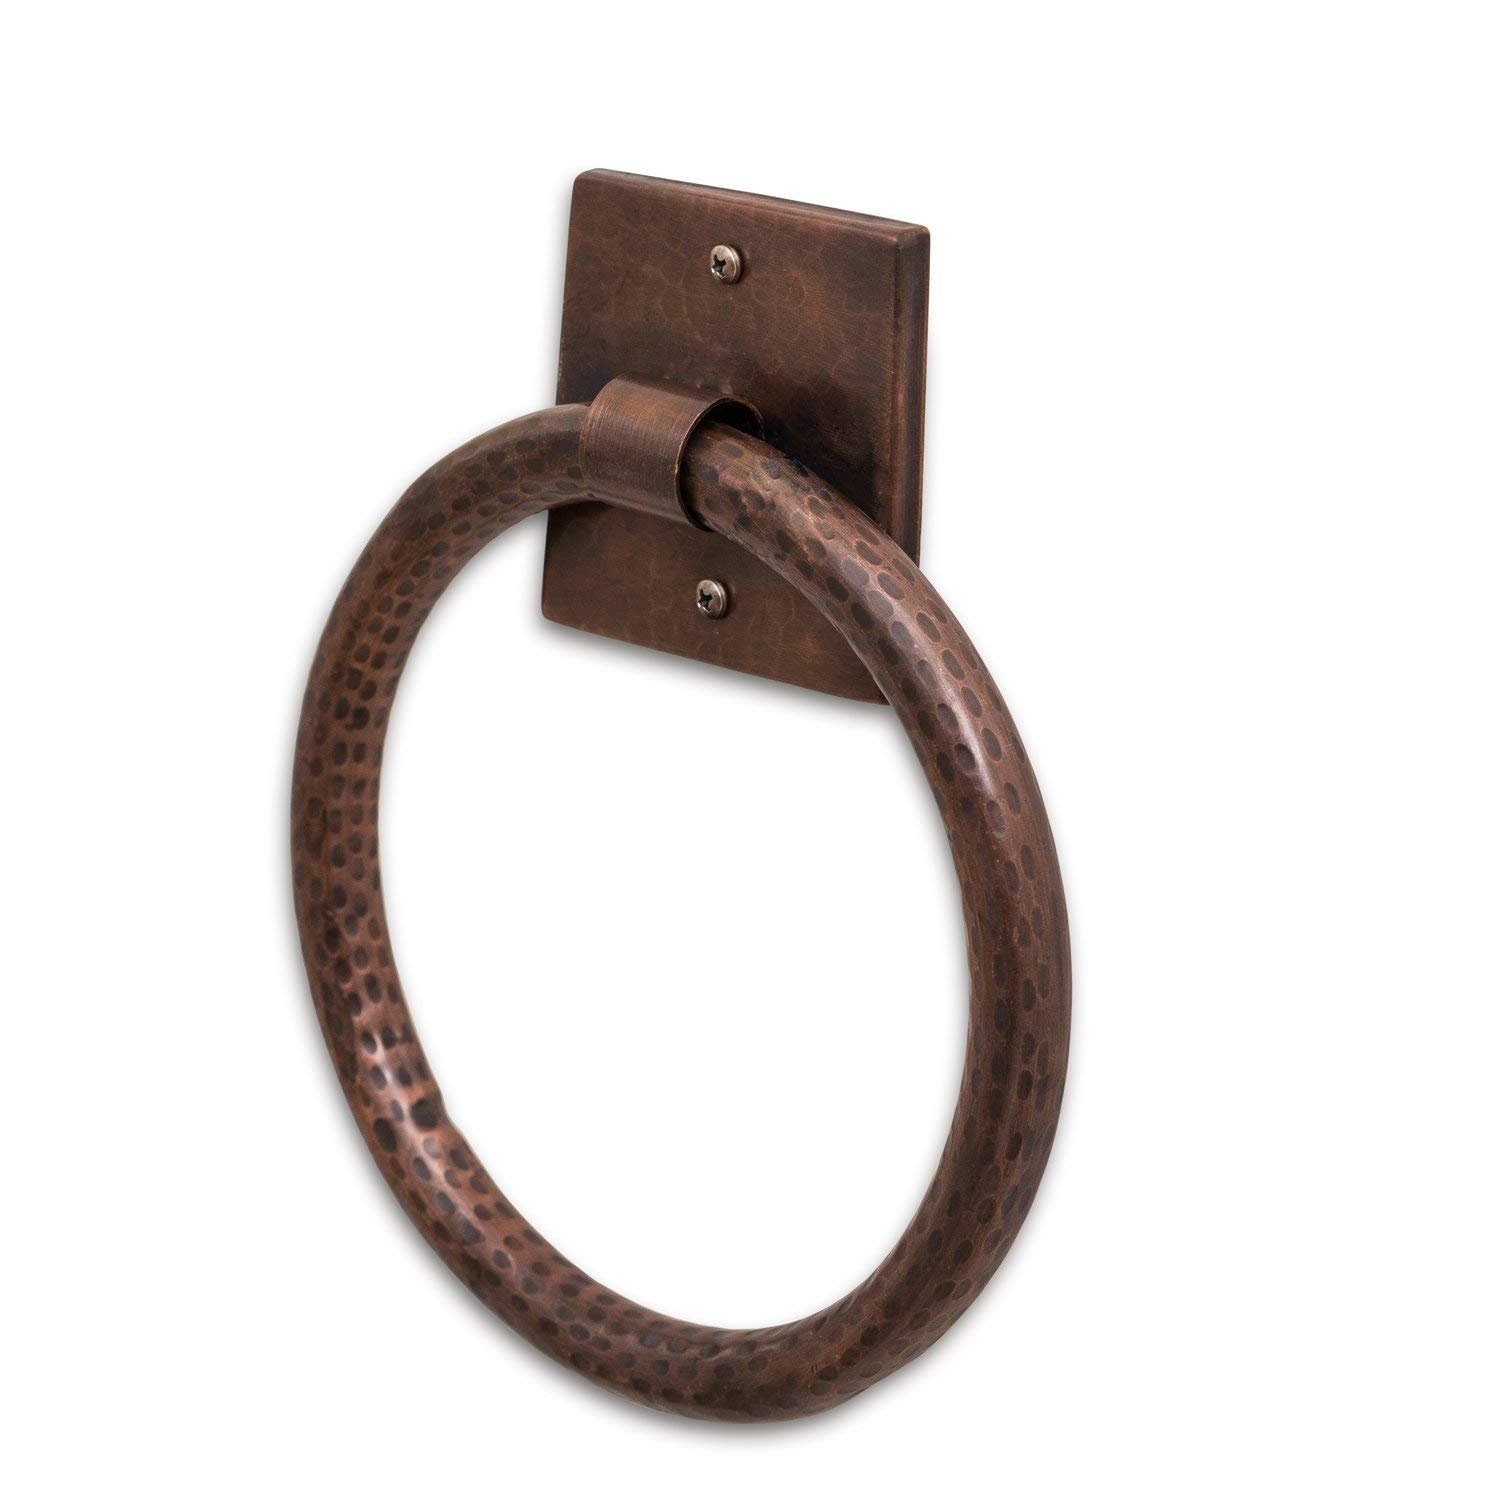 Monarch Abode 17089 Pure Copper Hand Hammered Towel Ring